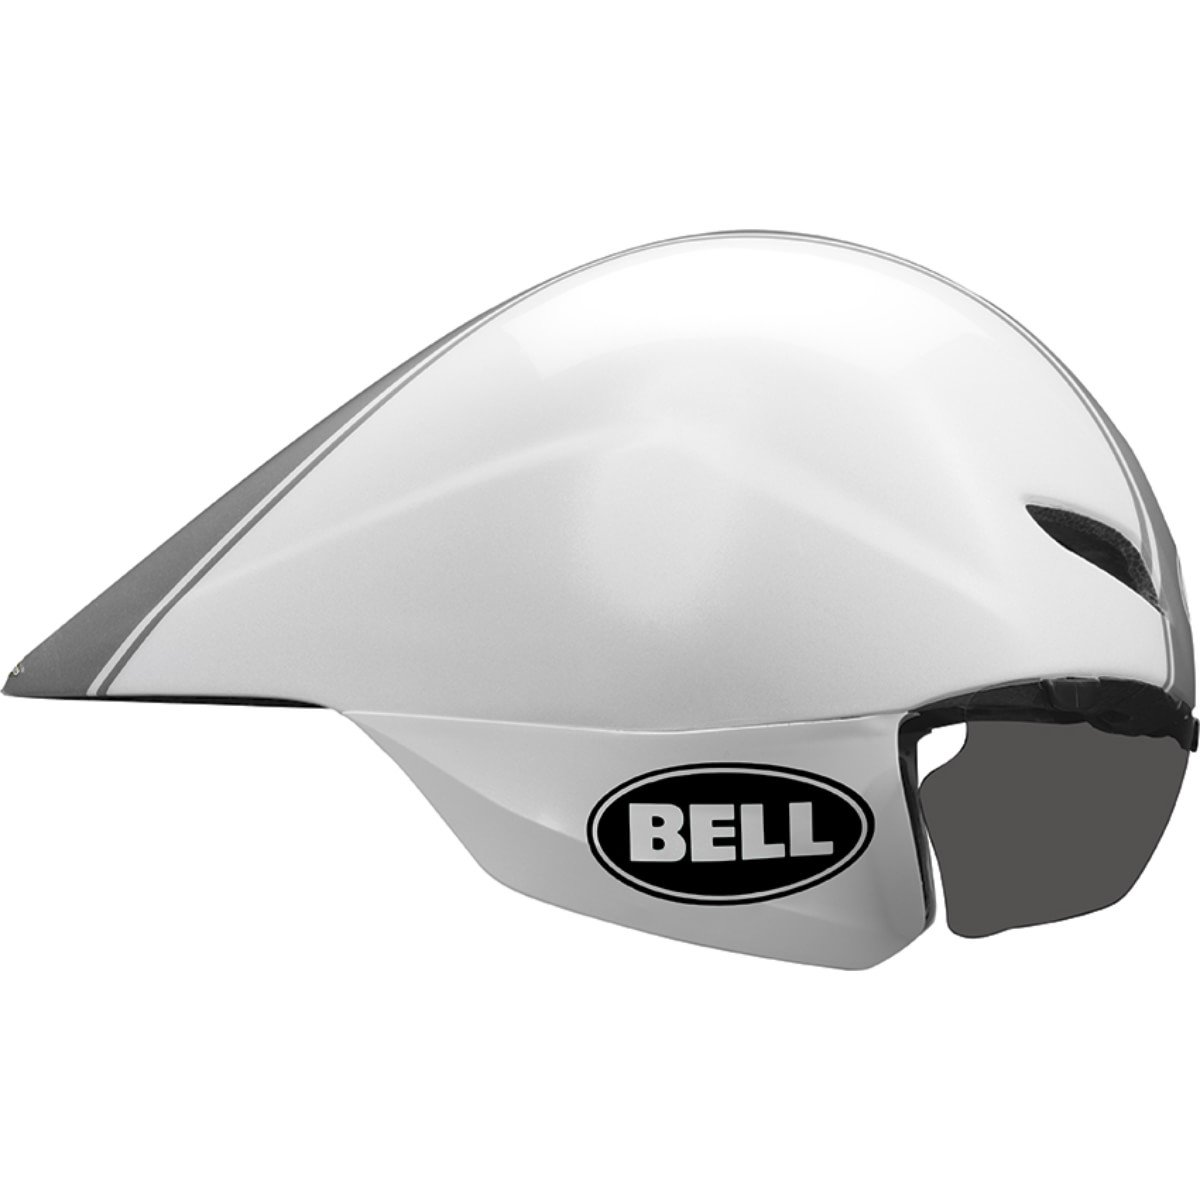 Bell Javelin Time Trial/Triathlon Helmet